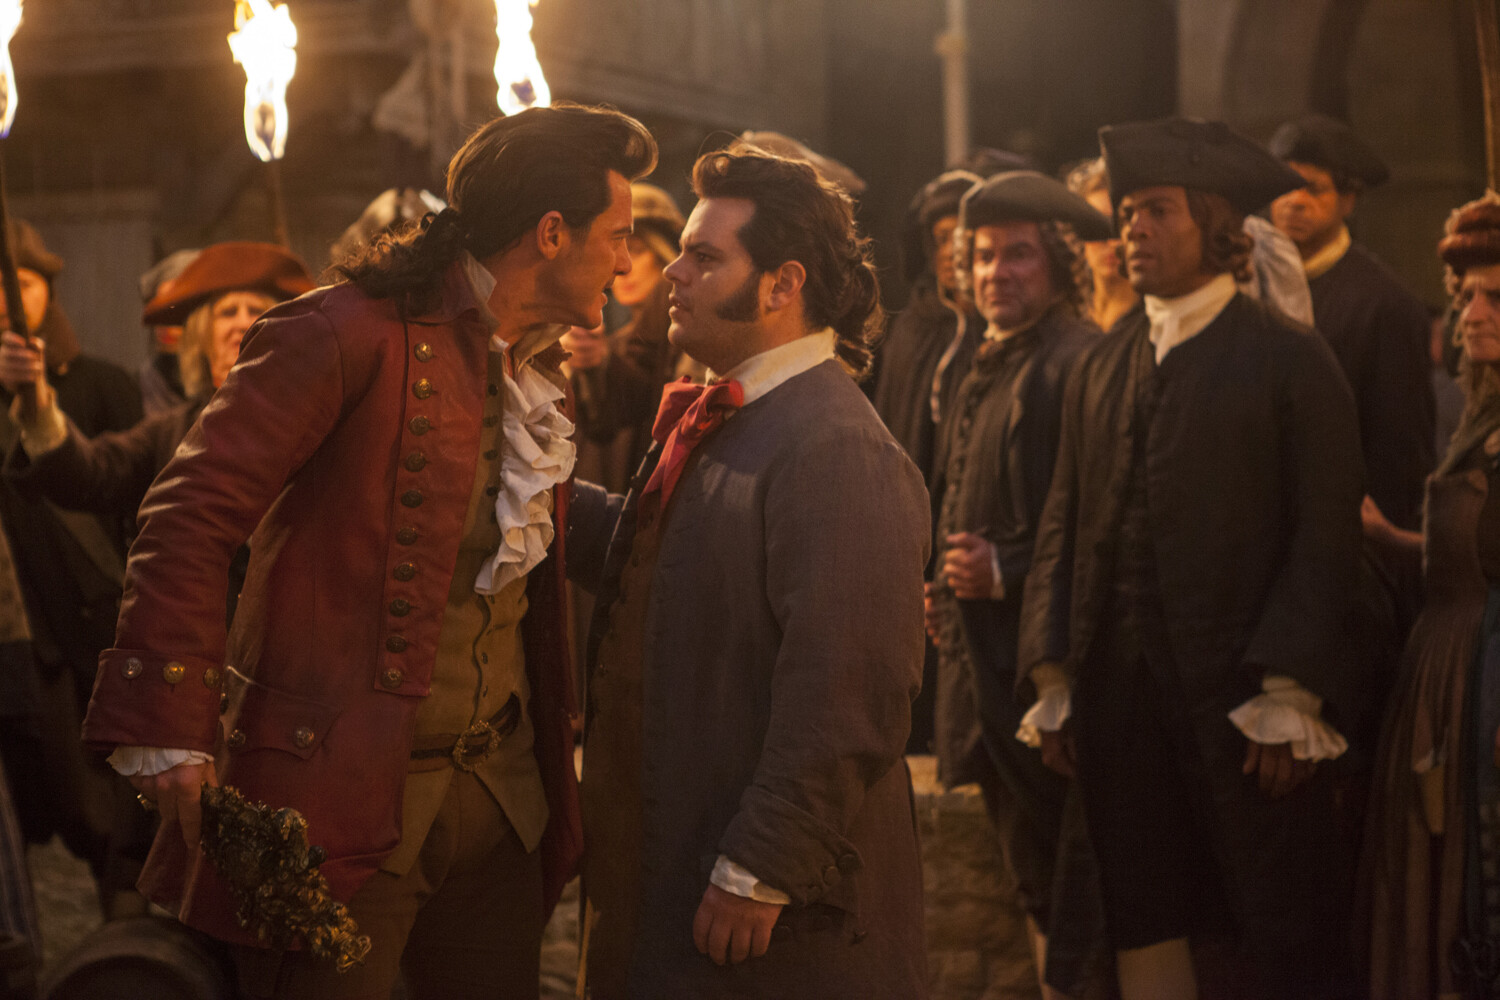 Luke Evans is Gaston and Josh Gad is LeFou, in Disney's BEAUTY AND THE BEAST, a live-action adaptation of the studio's animated classic, directed by Bill Condon gay characters